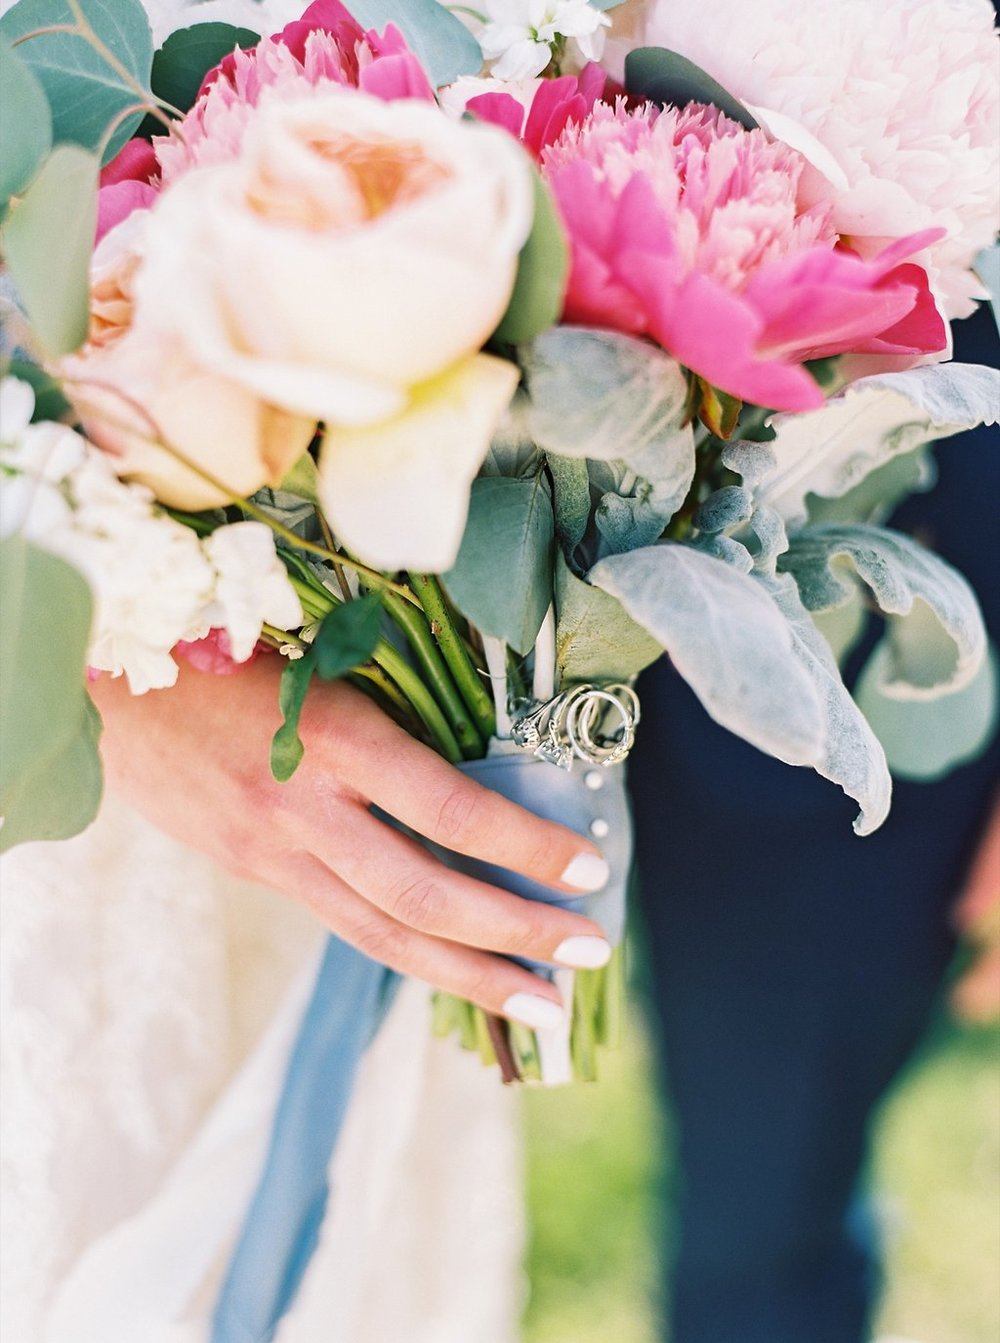 Blush and Fuchsia Peony Bridal Bouquet with Peach Juliet Garden Roses and Bridesmaids' Blue rings as Something Borrowed and Something Blue | Blush and Navy Wedding with Fuchsia, French Blue and Gold Accents | Simply Jessica Marie's Southern Wedding at Gettysvue Golf Course and Country Club in Knoxville Tennessee | Photo by Perry Vaile Photography